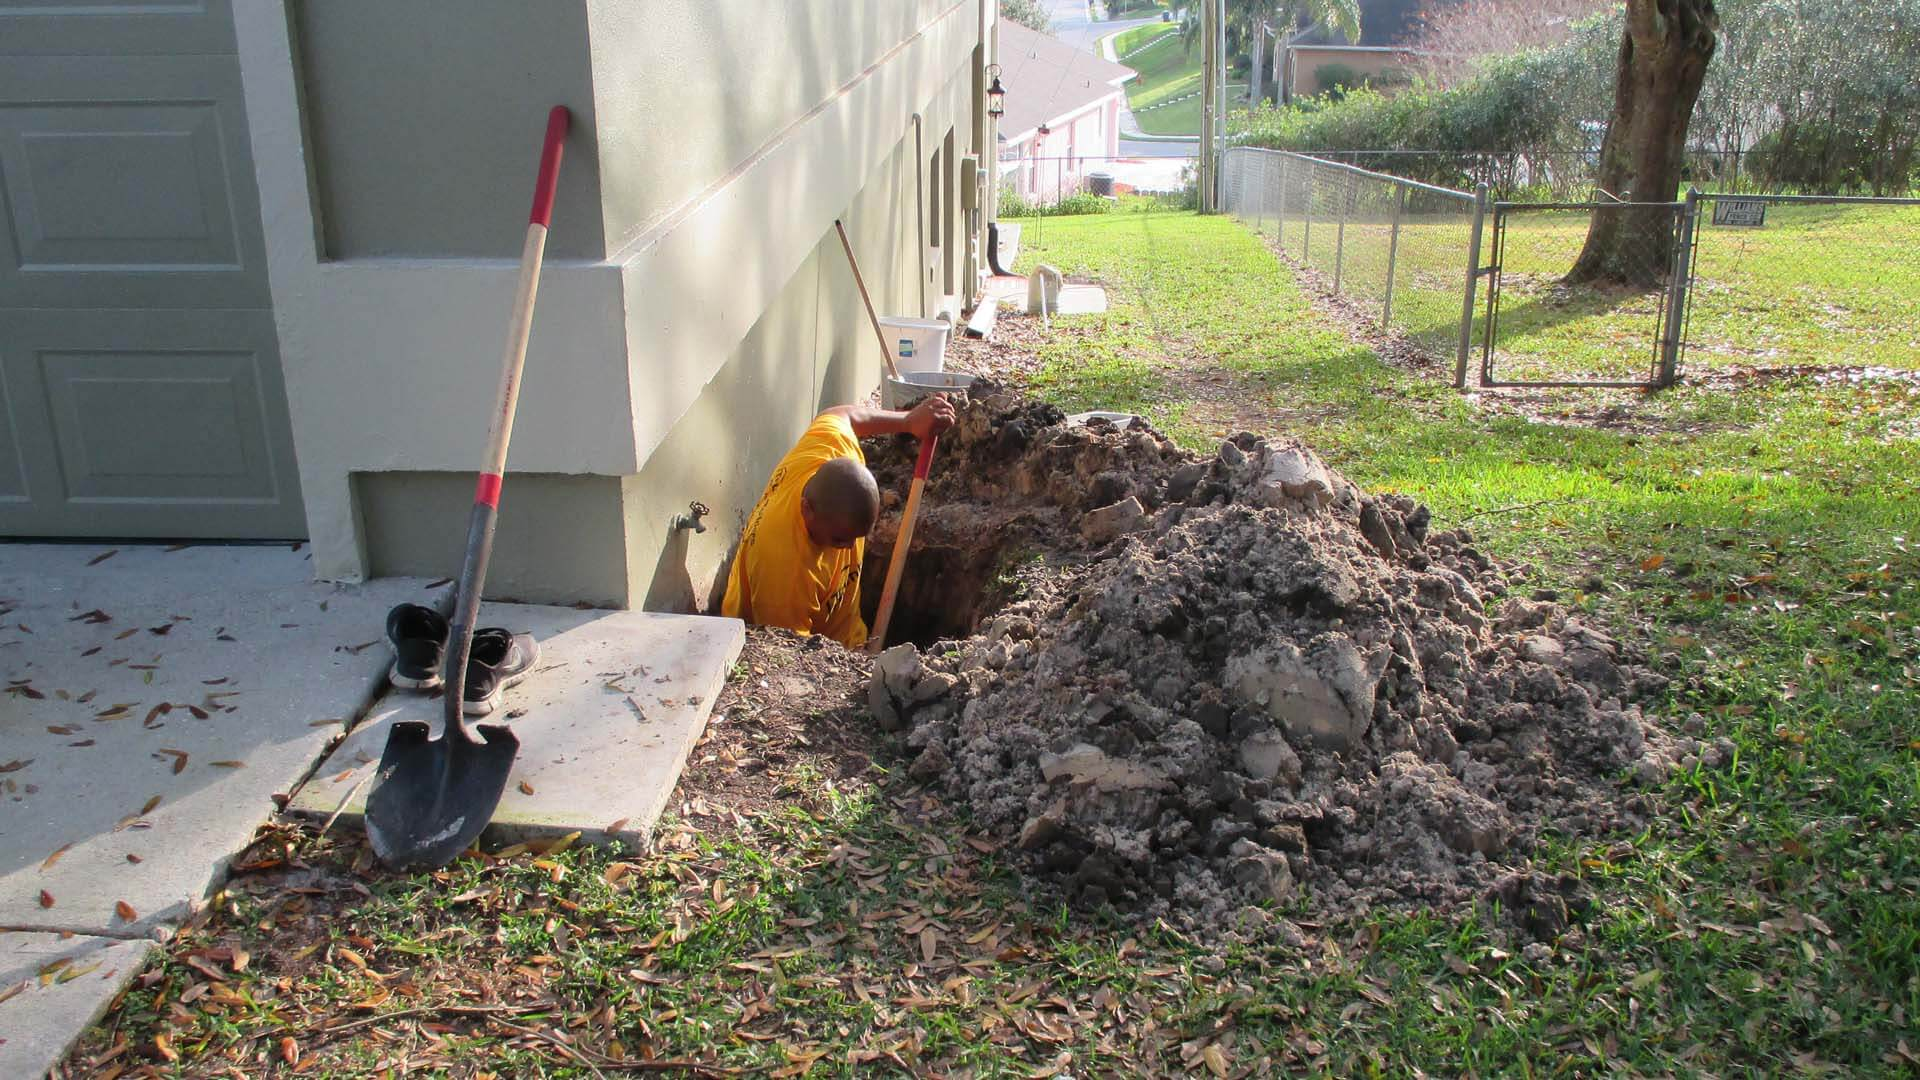 Underground repiping service for plumbing at home in Lakeland, FL.